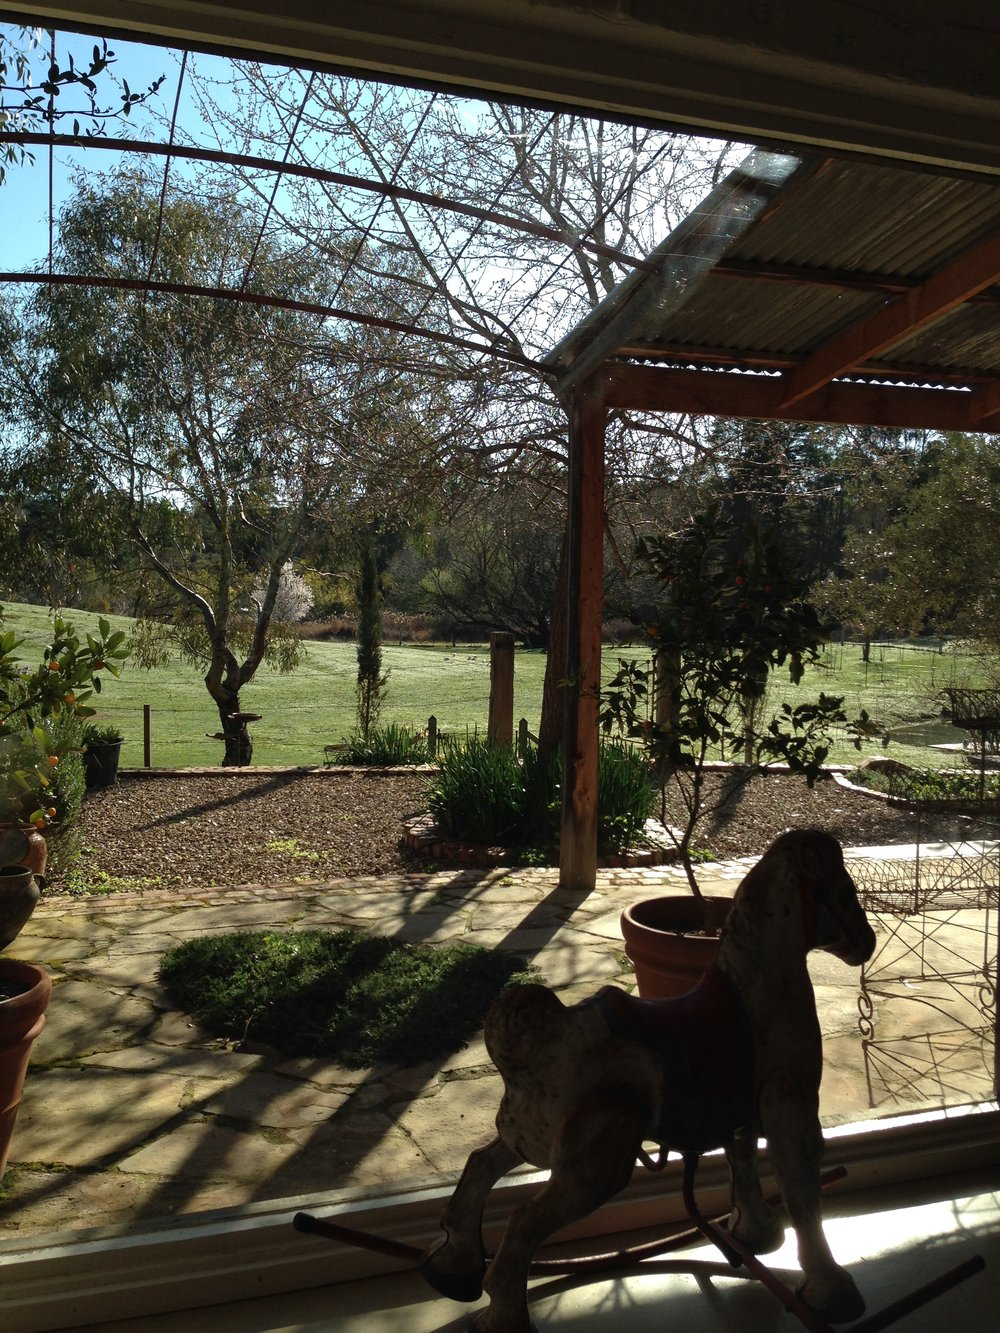 This is the view from the living room complete with antique rocking horse. I love sitting on the sofa with a cup of coffee staring out at the little garden and the paddock beyond where two resident donkeys live.